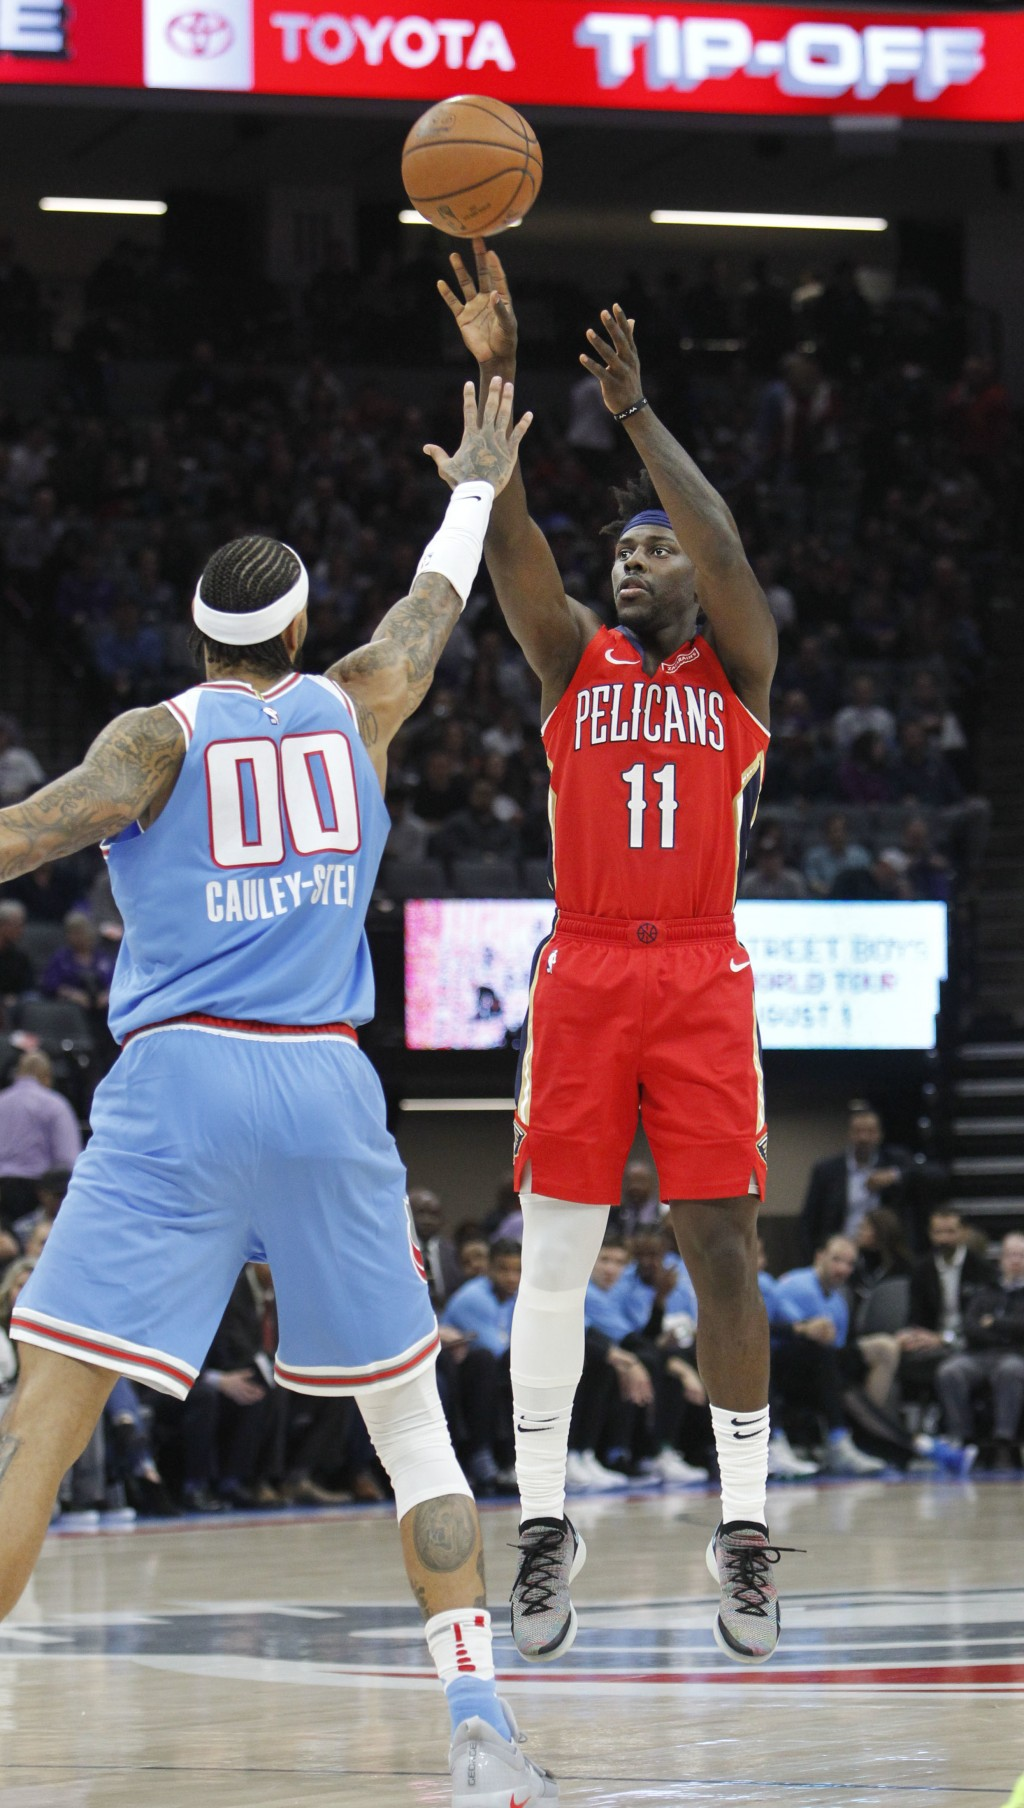 New Orleans Pelicans guard Jrue Holiday (11) shoots over Sacramento Kings center Willie Cauley-Stein (00) during the first half of an NBA basketball g...